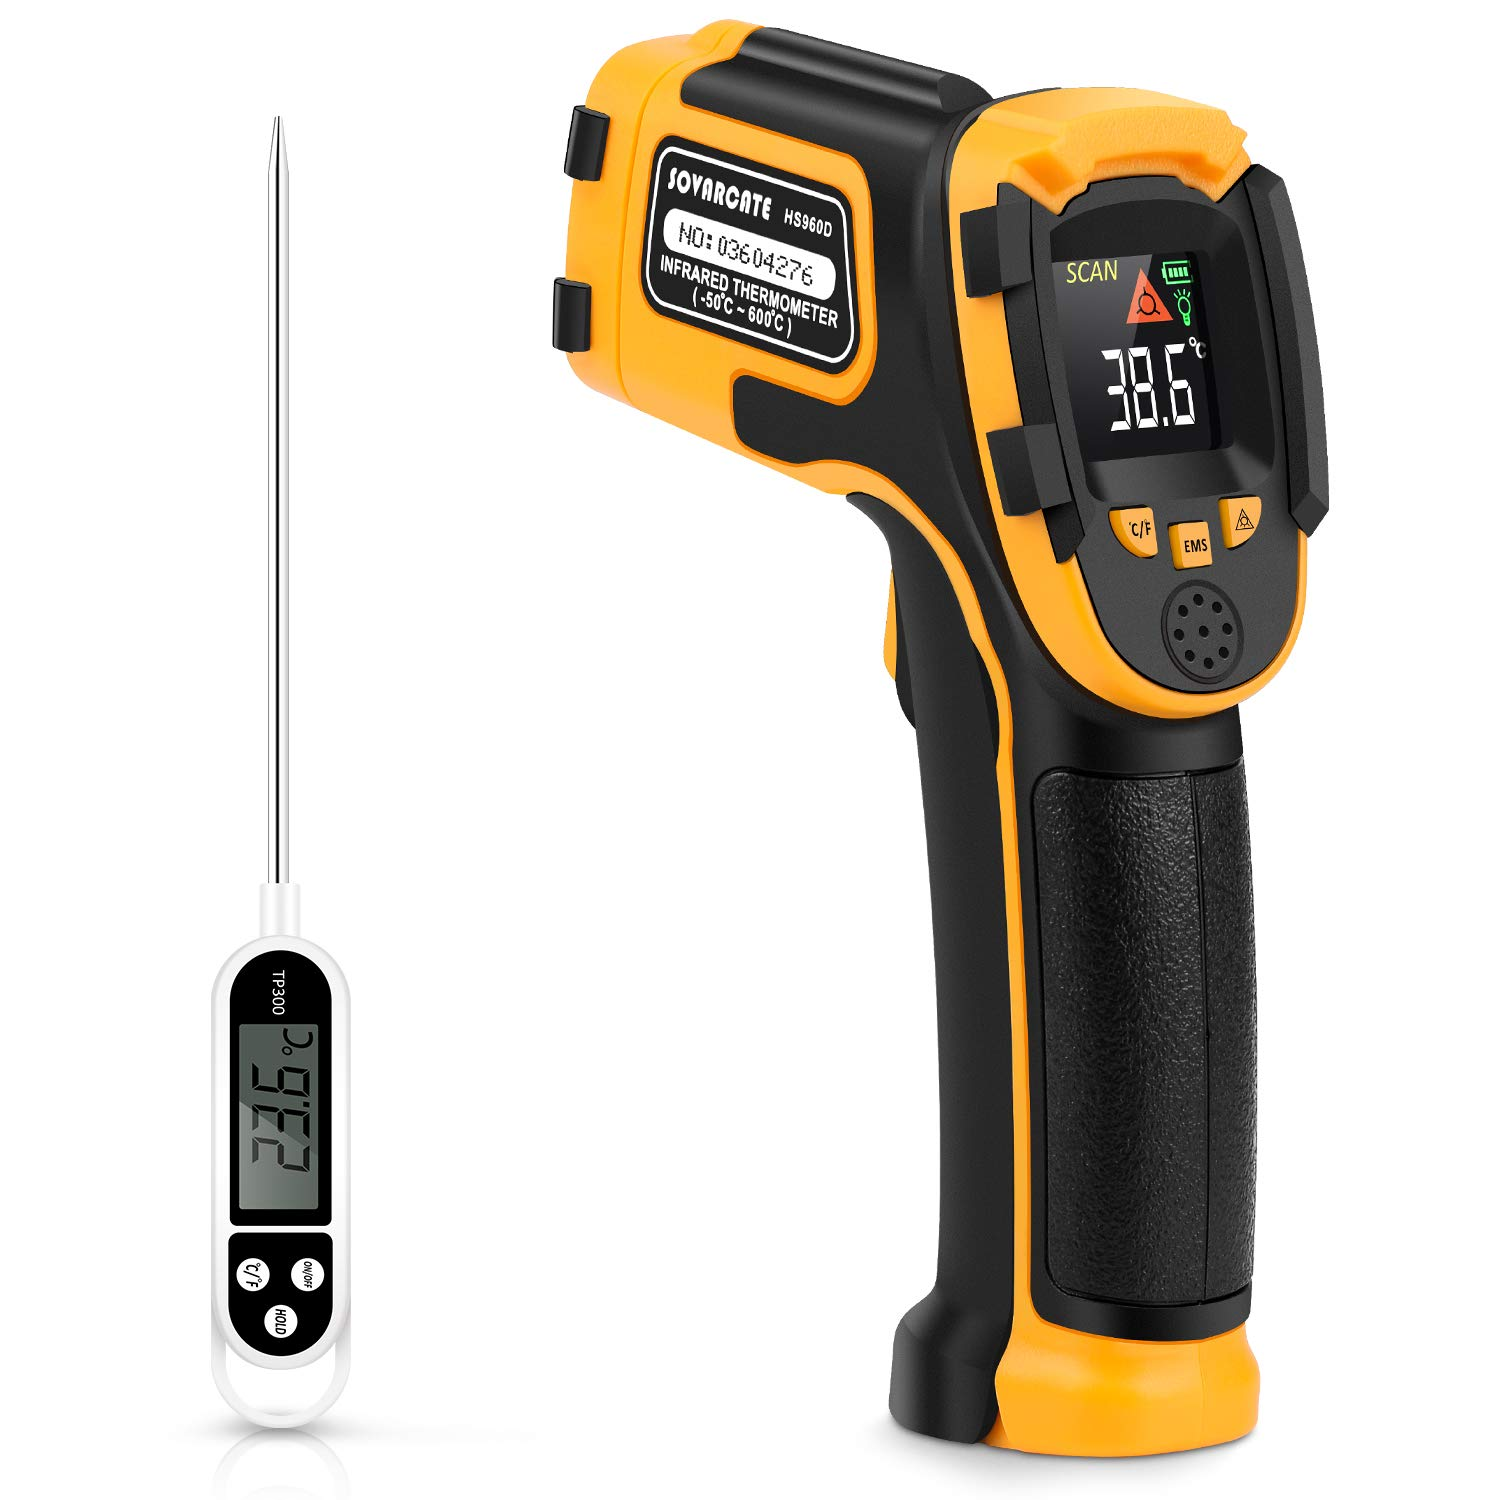 Great infrared thermometer and meat thermometer